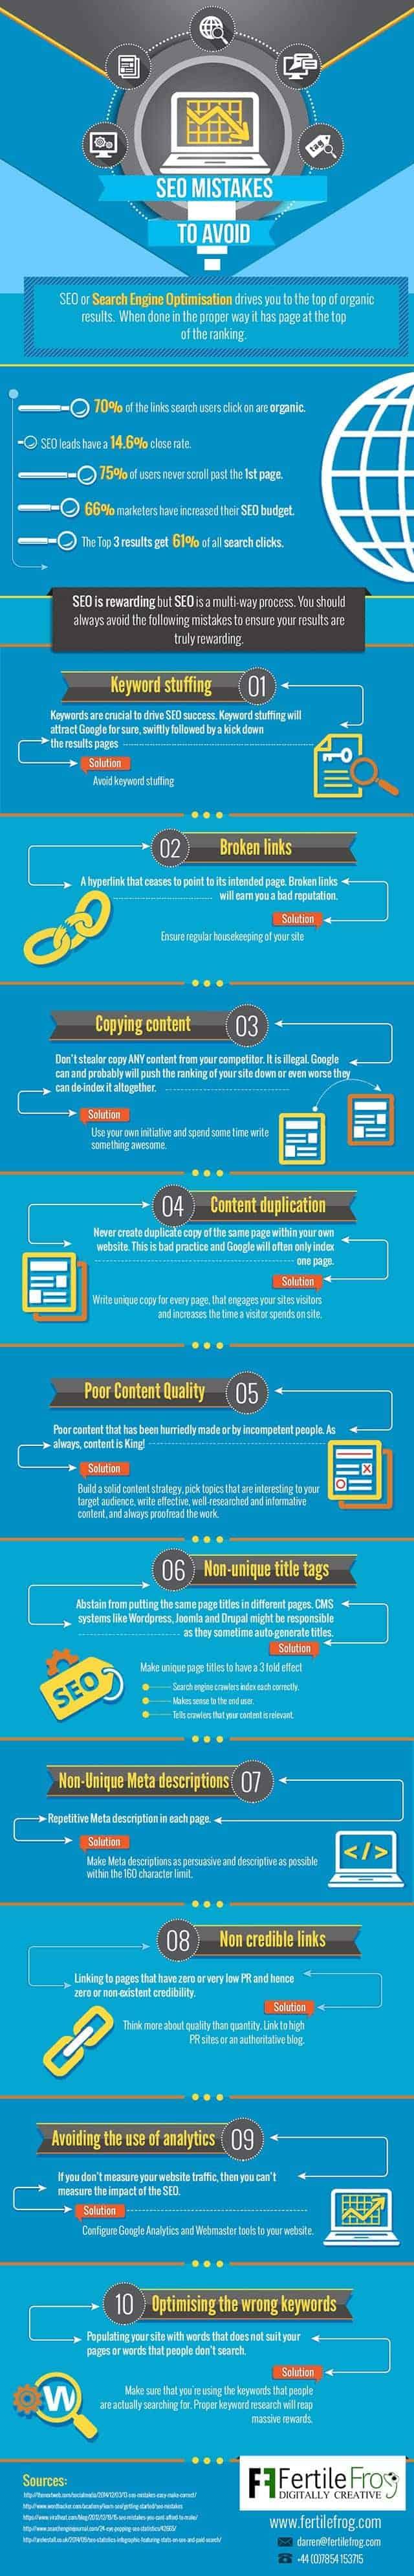 seo-tips, seo-ranking-factors, seo-infographics, seo, search-engine-optimization, on-site-seo, infographics, google-seo-tips, google, free-seo-tips, connecticut-seo-company - SEO Hacks | Search Engine Optimization In Connecticut